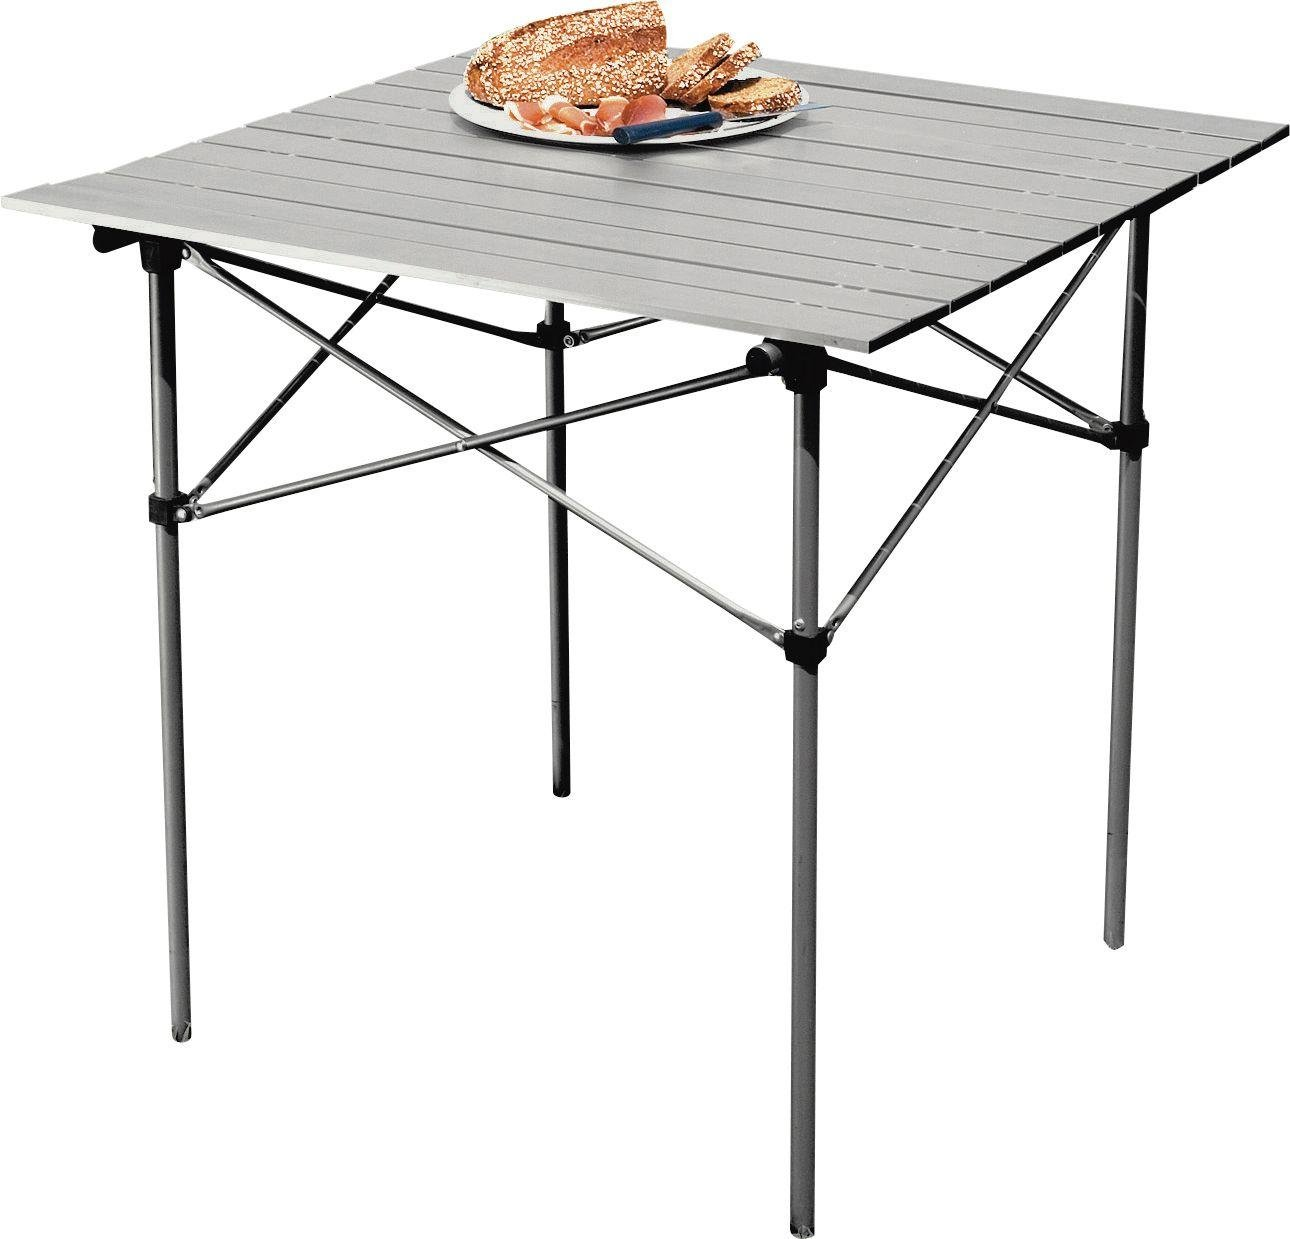 sale on aluminium folding camping table with slatted top. Black Bedroom Furniture Sets. Home Design Ideas